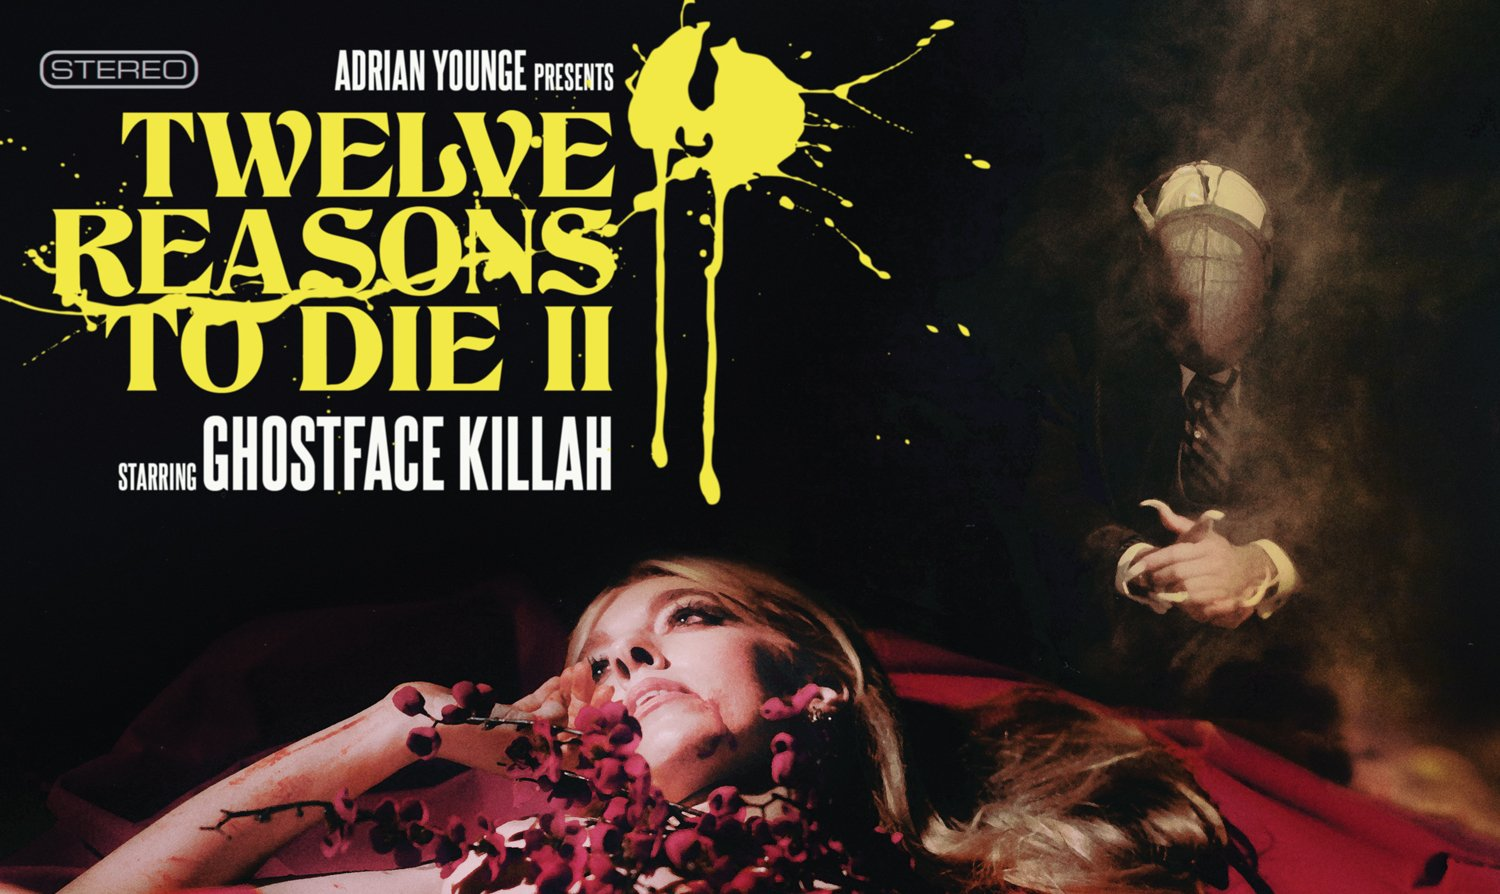 Adrian Younge And Ghostface Killer Cover